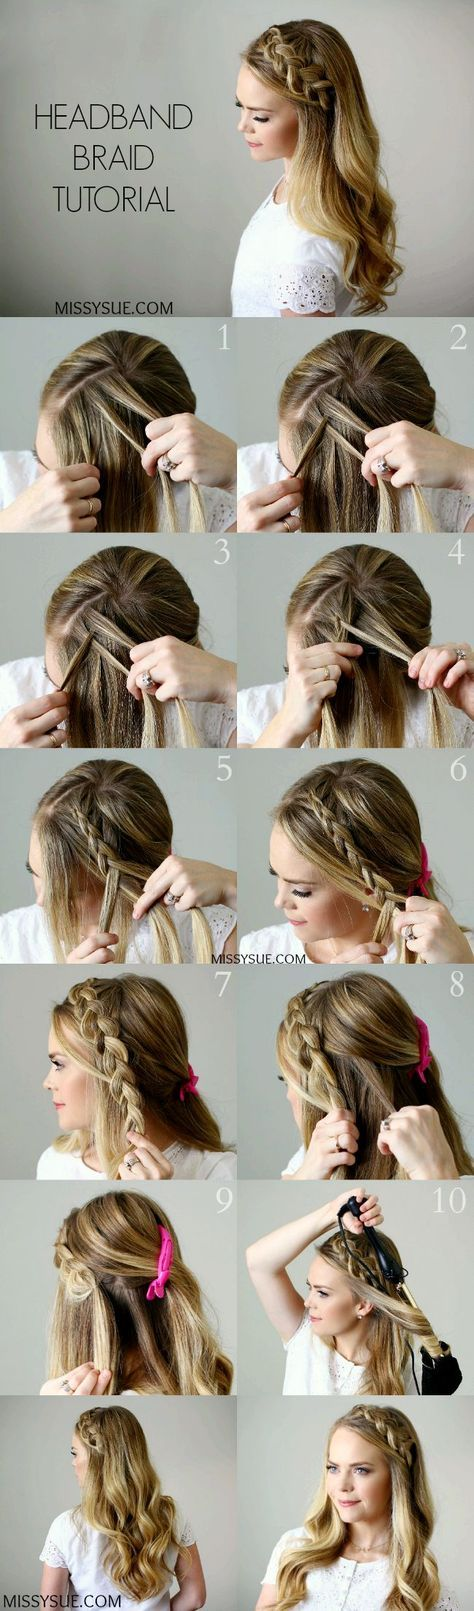 Head band braid is LOVE <3